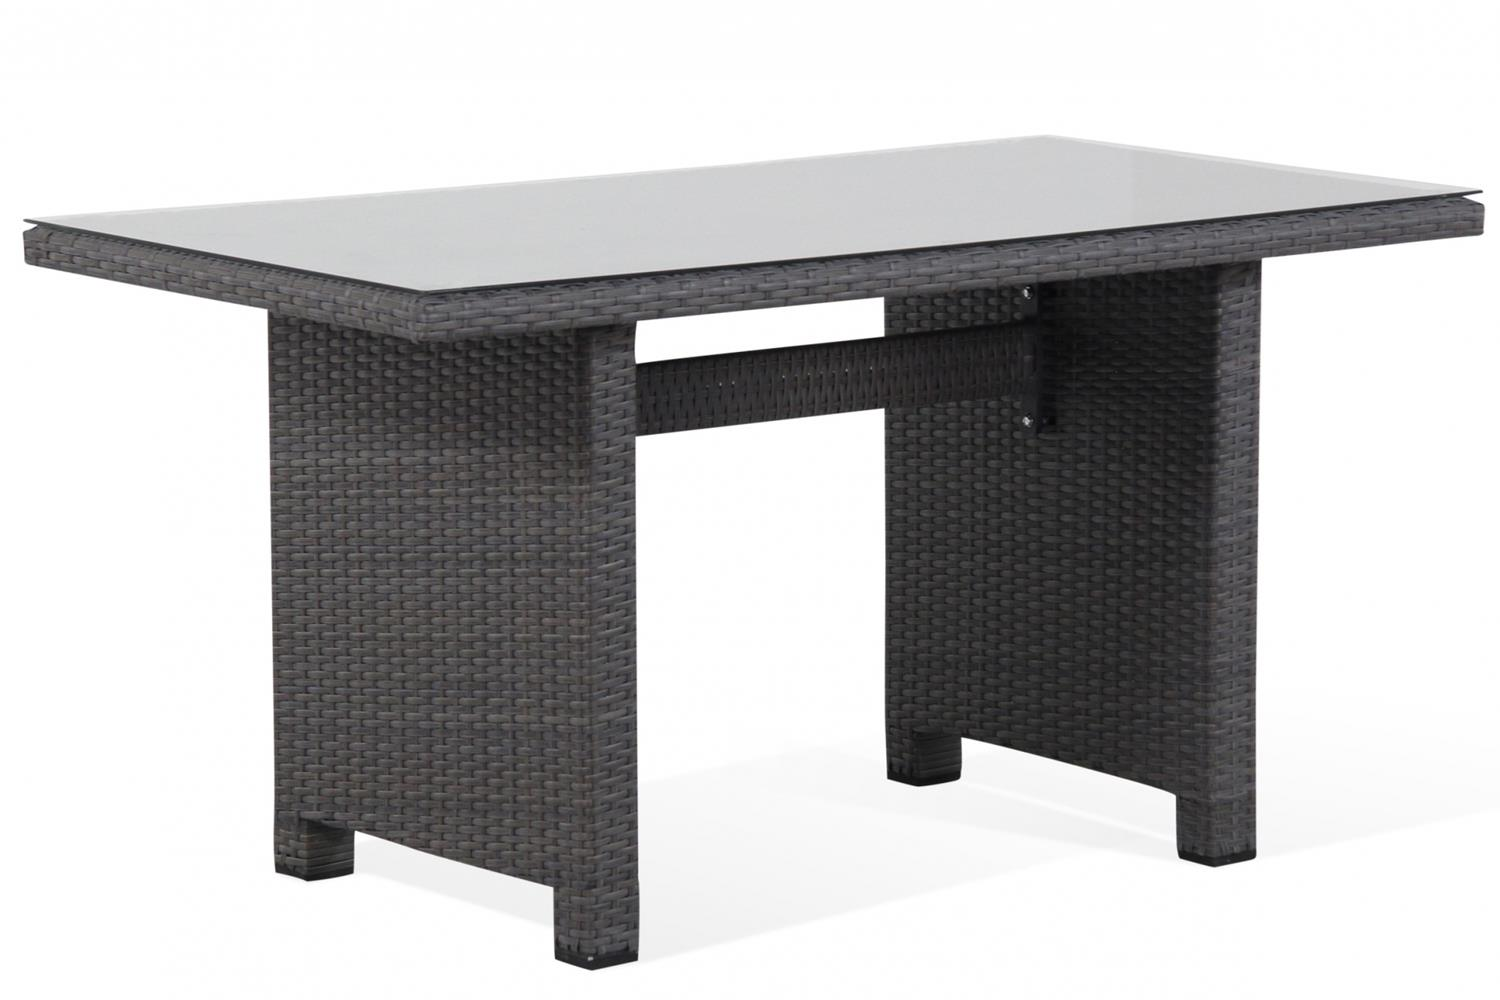 Garden Collections Houston lounge/dining tafel 130 x 70 cm